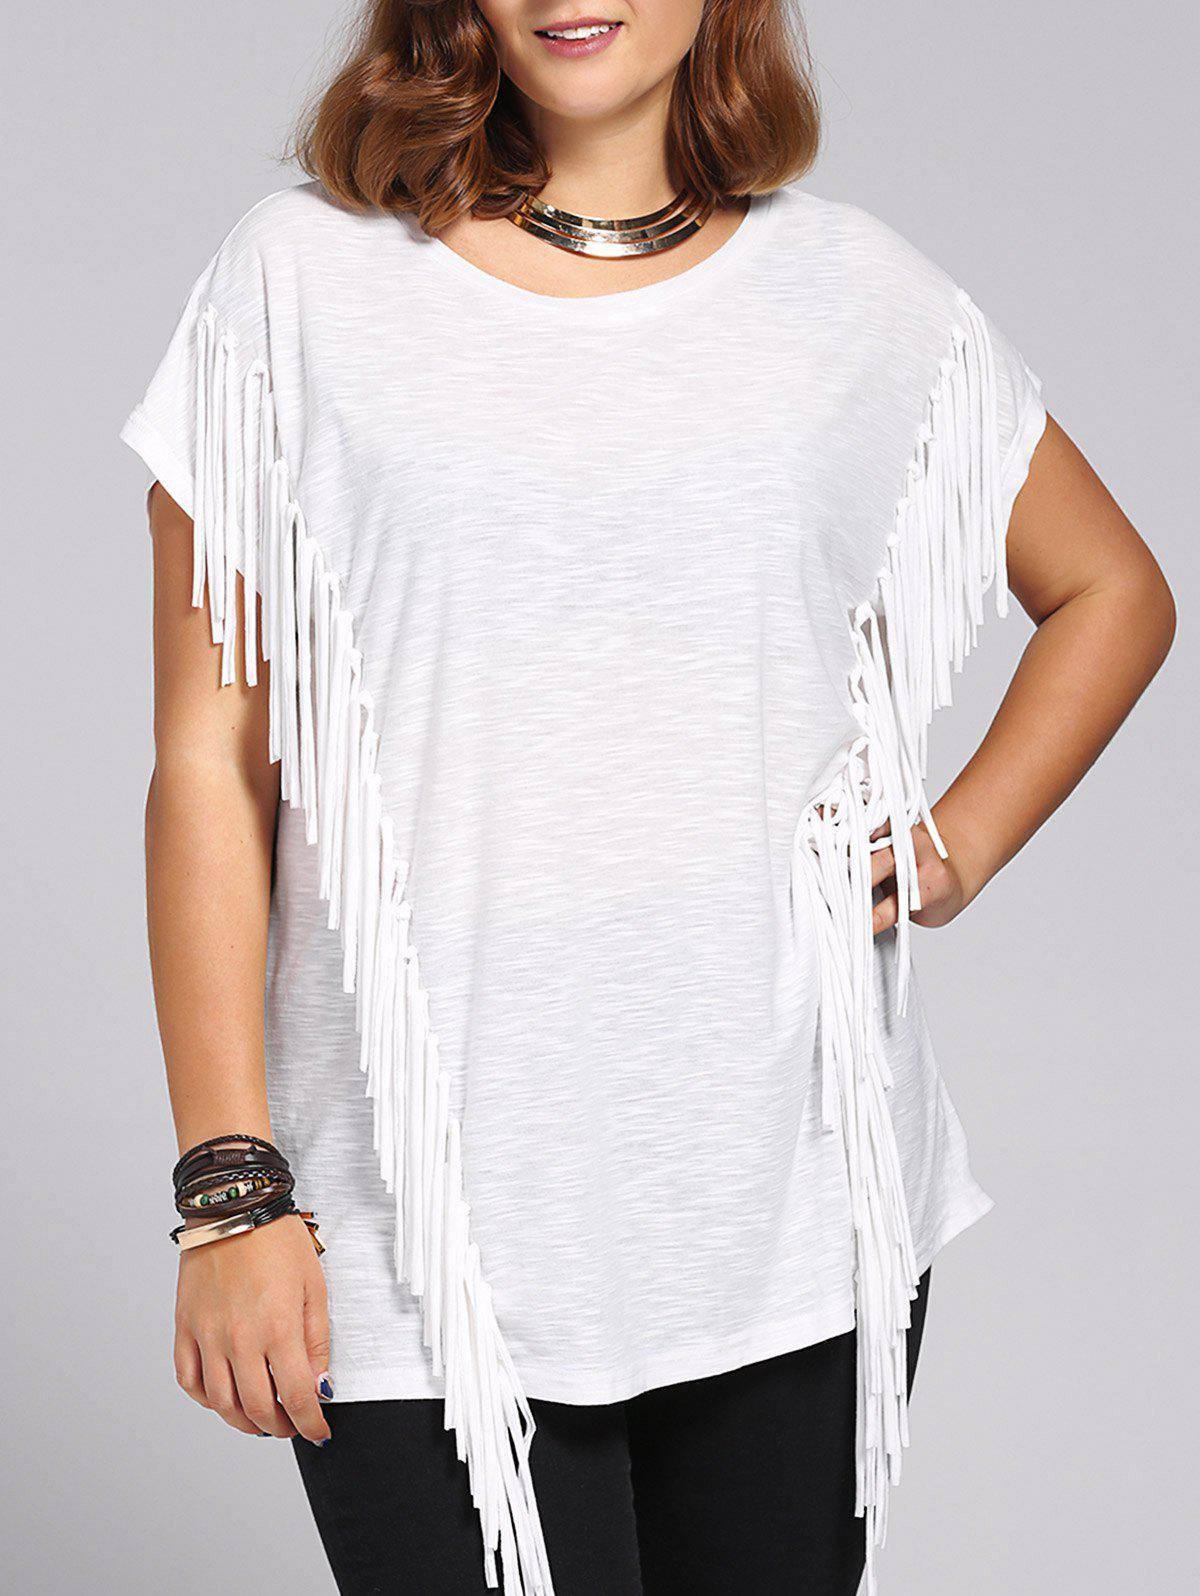 Trendy Short Sleeves Jewel Neck Fringed T-Shirt For Women - WHITE 4XL